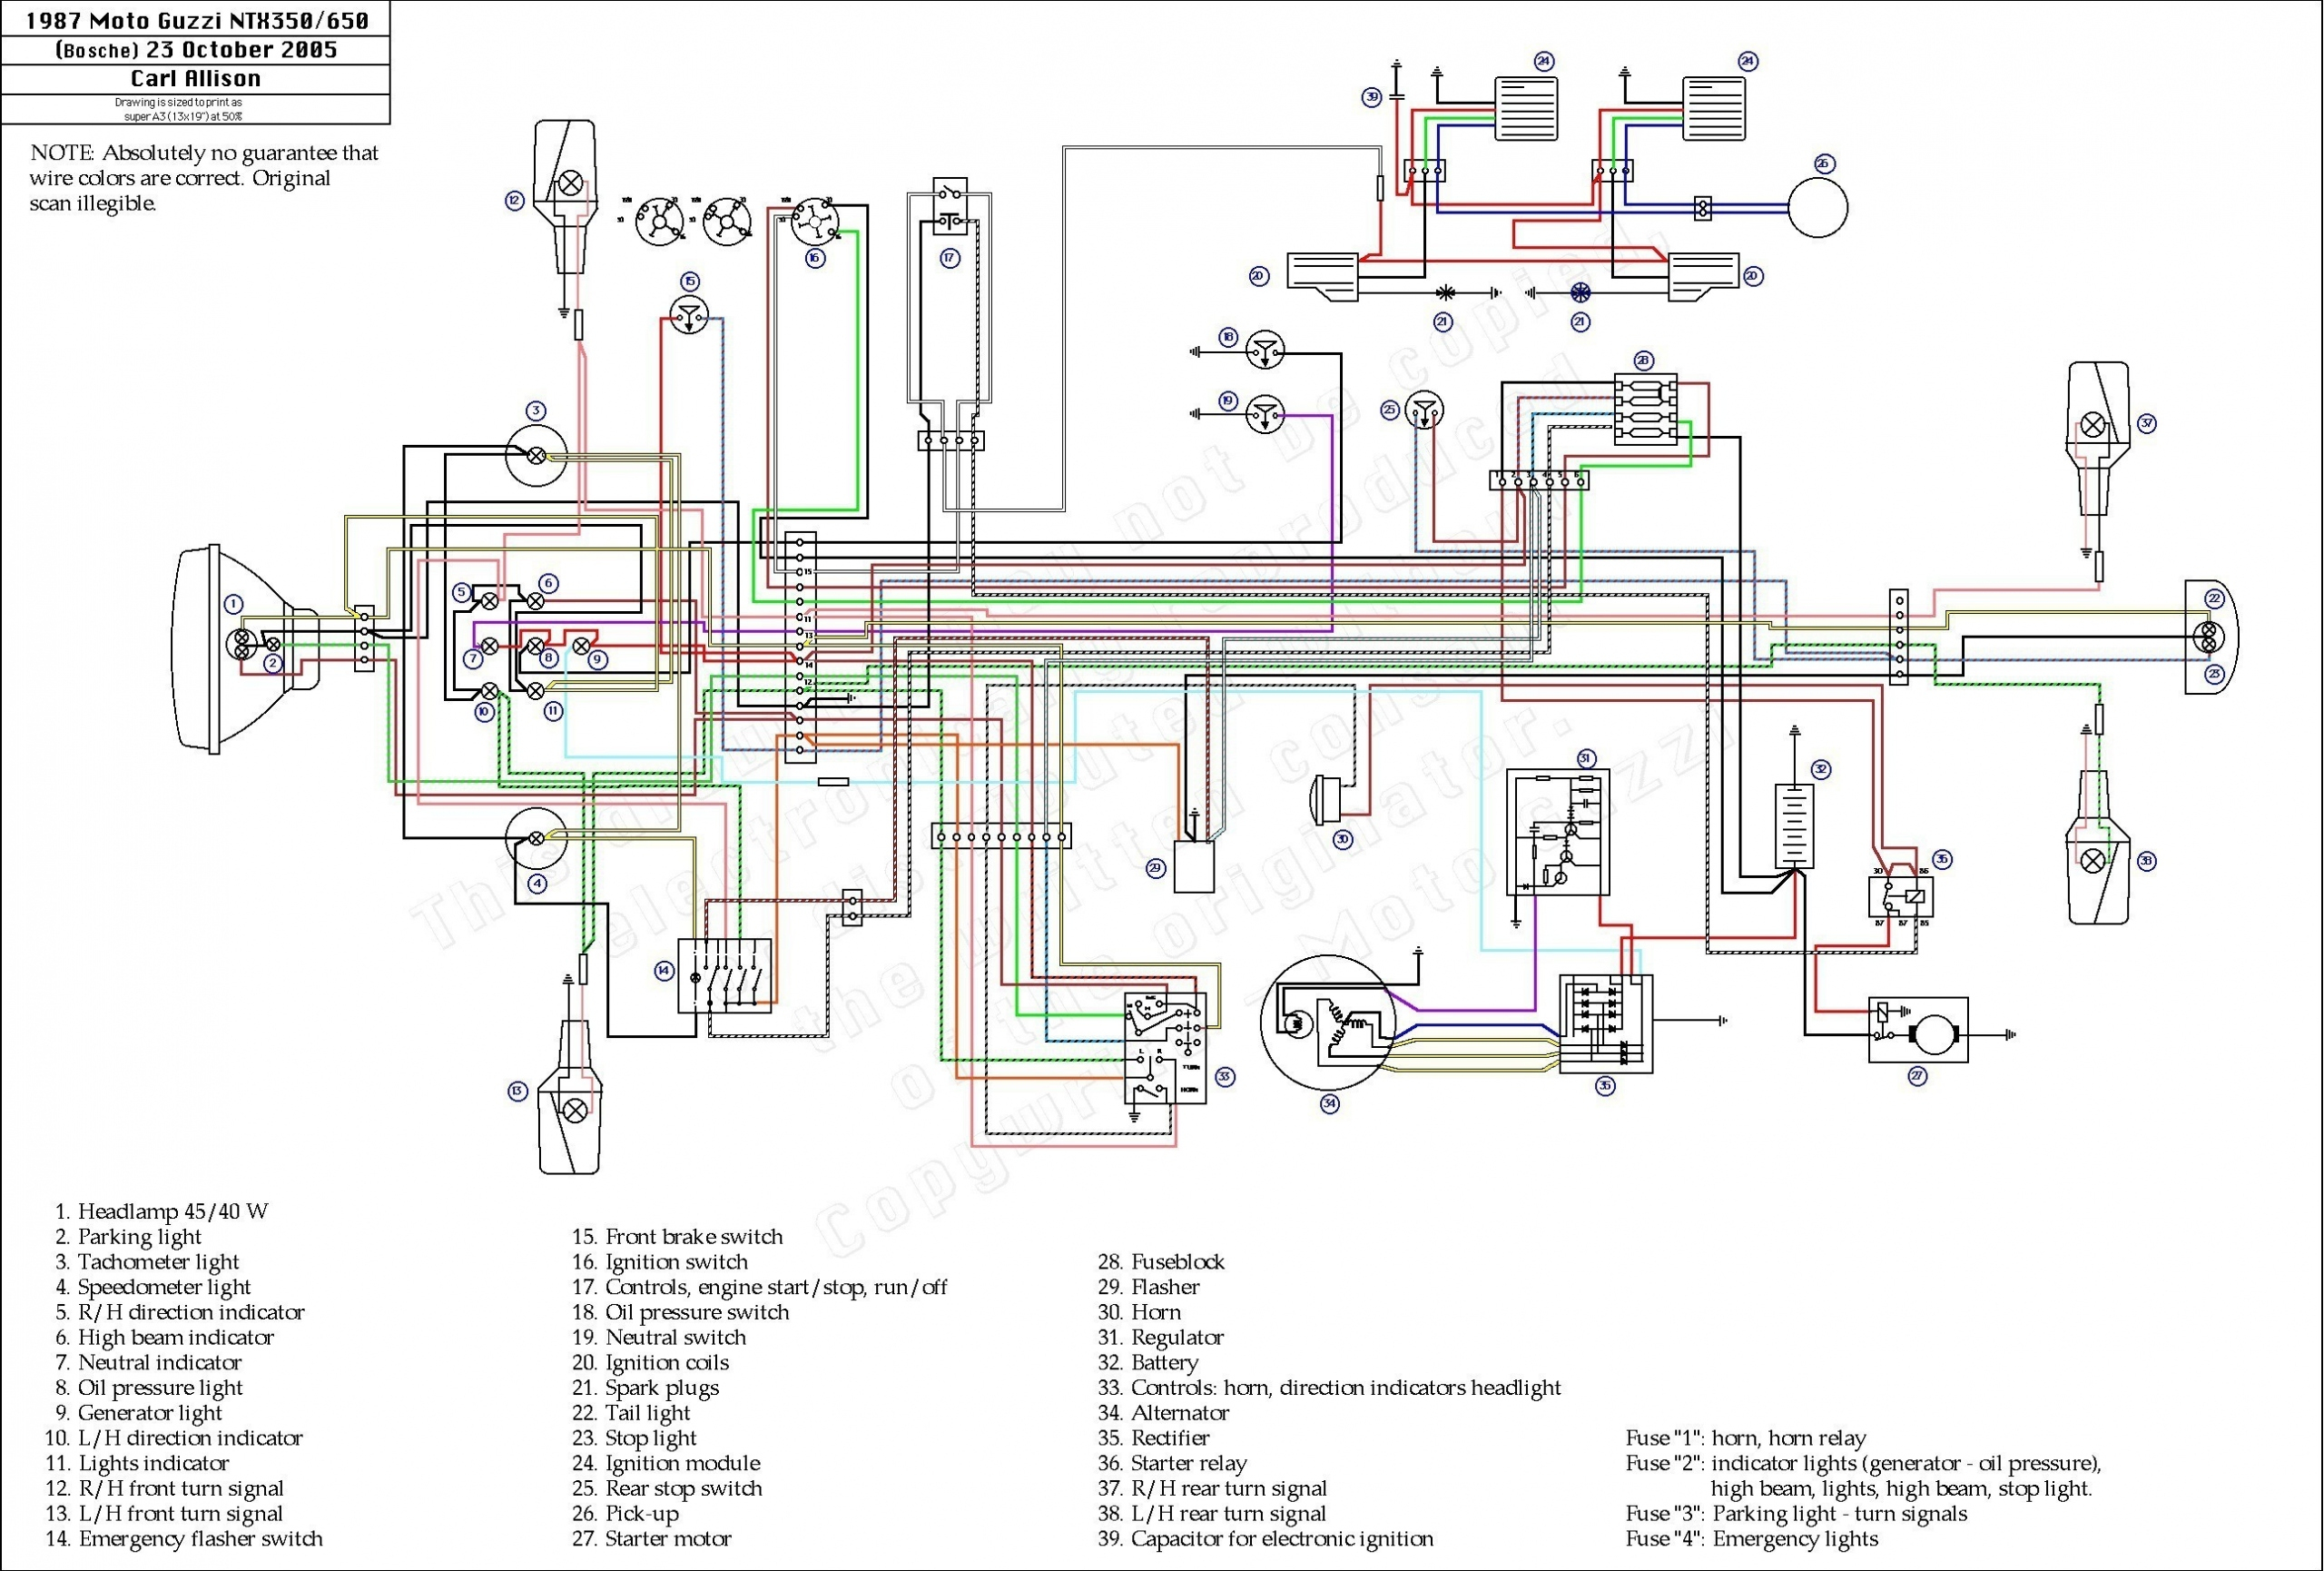 DIAGRAM] Tao 125 Atv Wiring Diagram FULL Version HD Quality Wiring Diagram  - KIA4550WIRING.CONCESSIONARIABELOGISENIGALLIA.IT